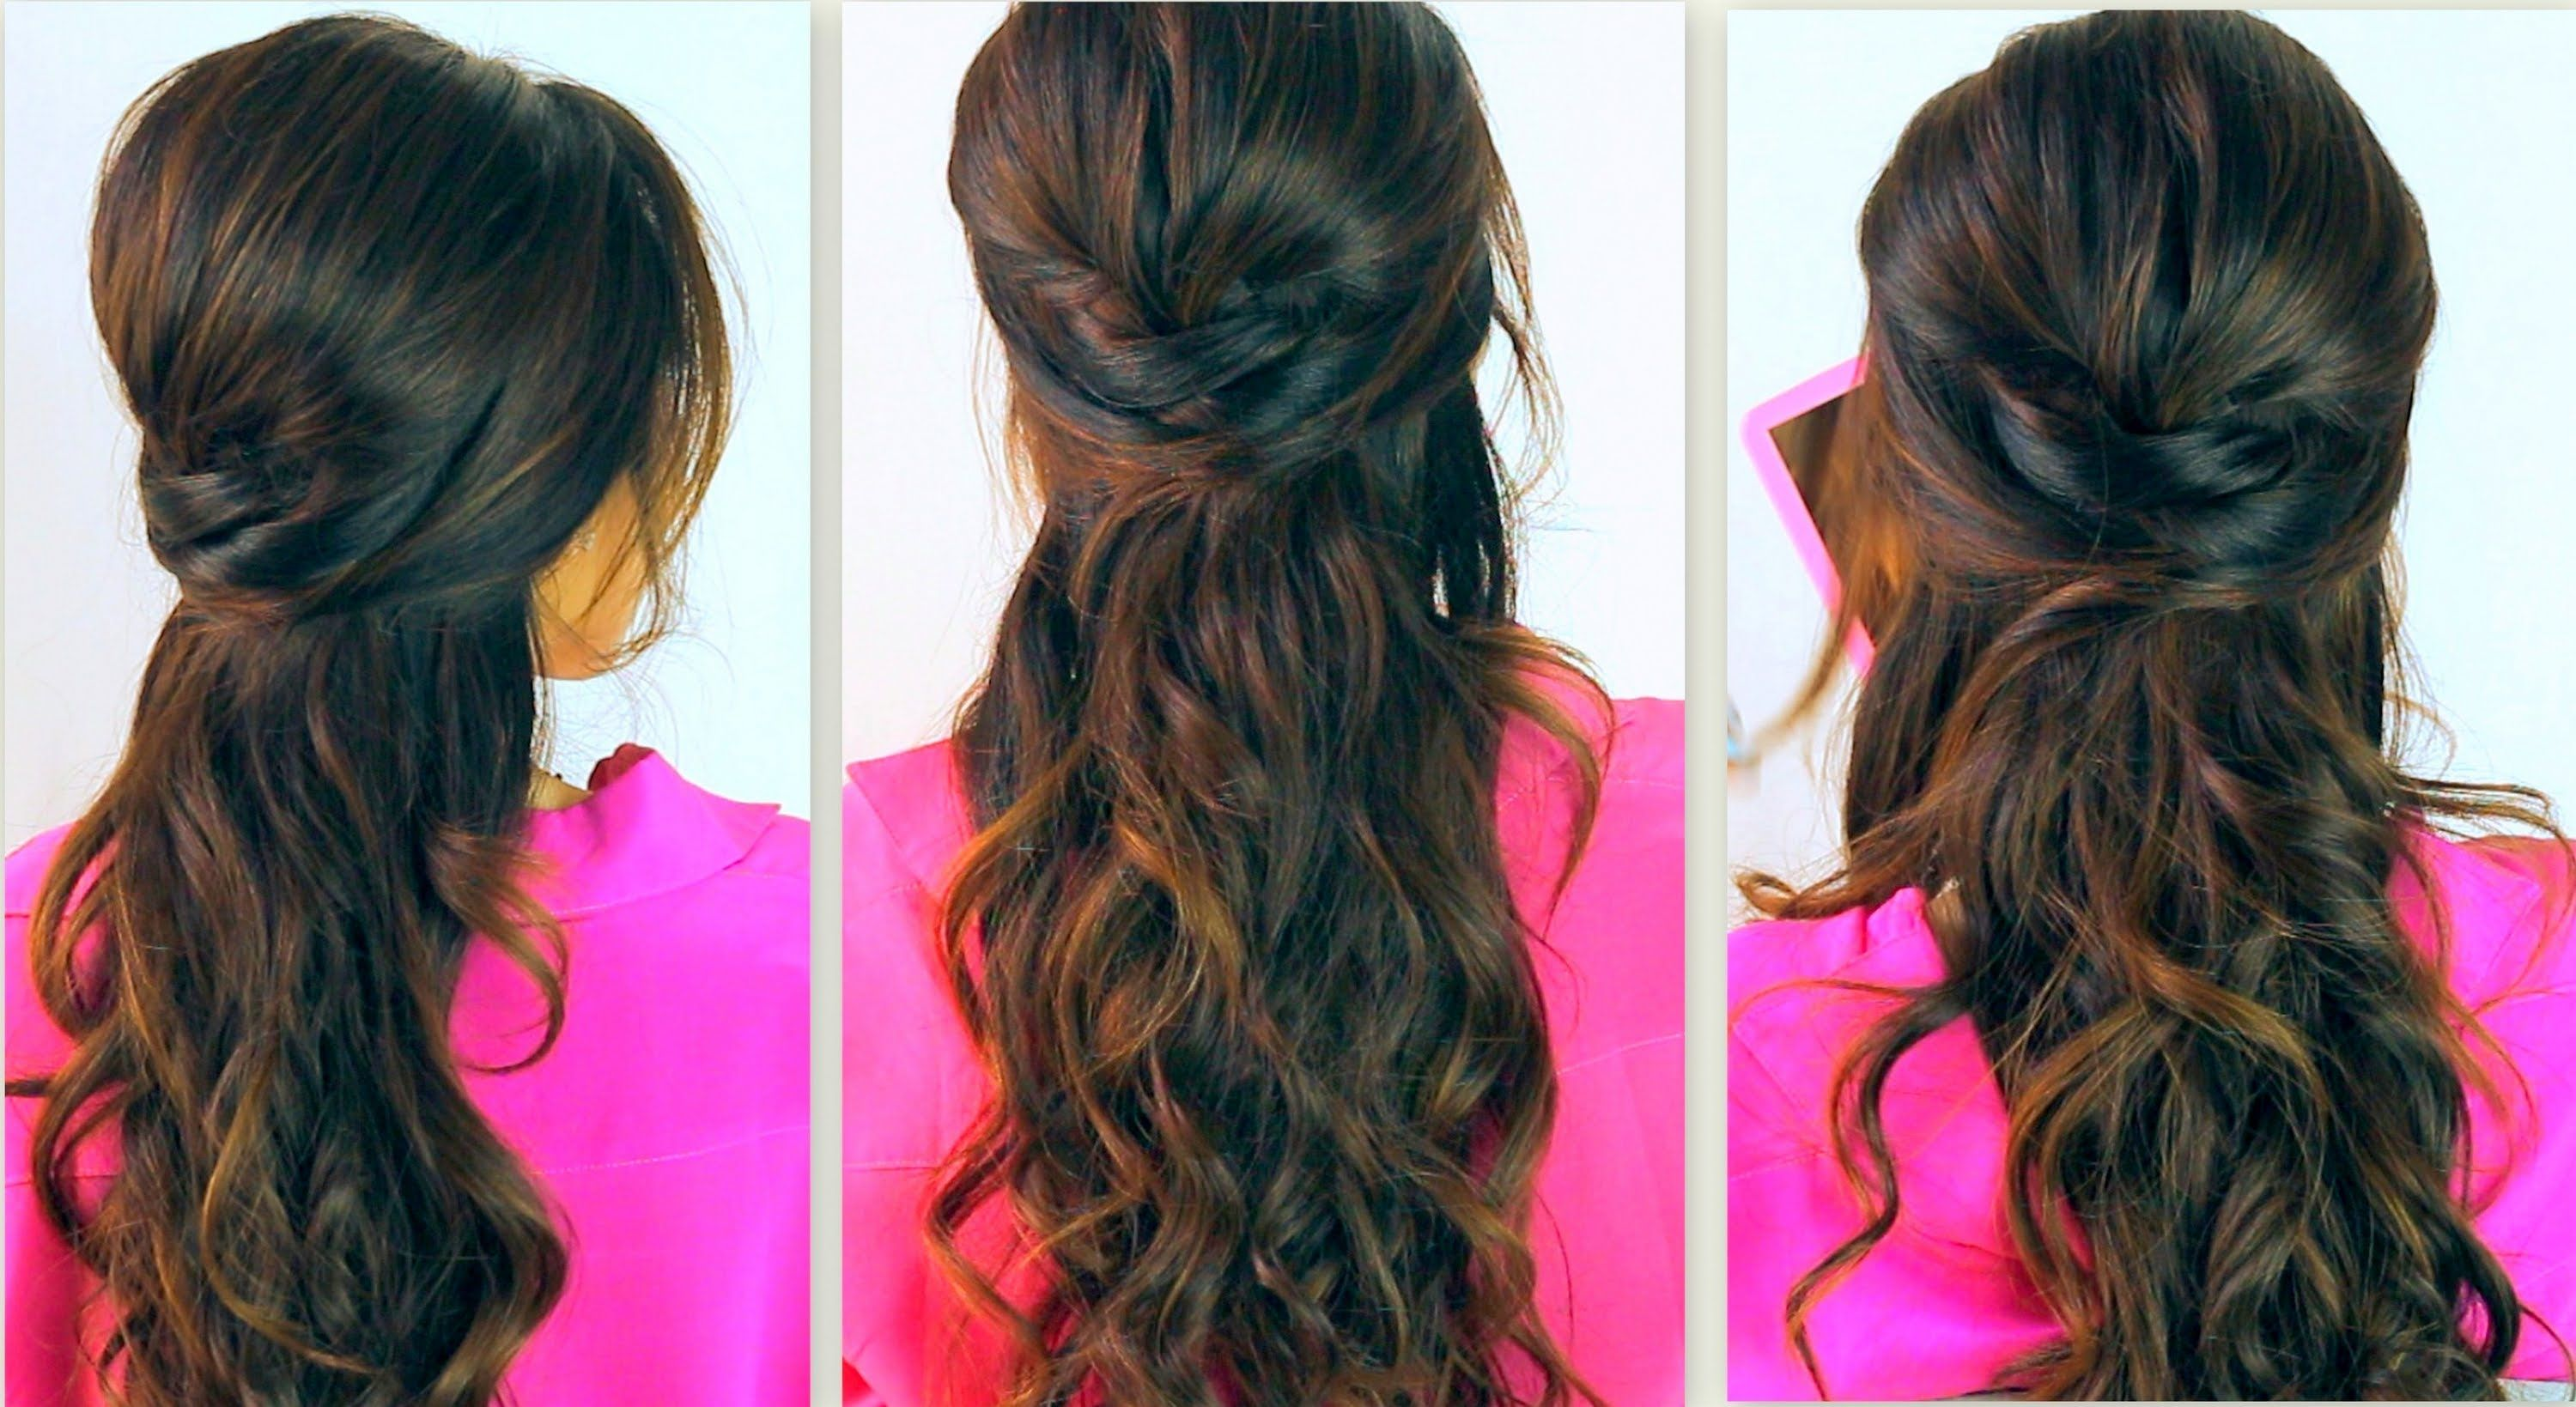 gorgeous half up half down hairstyles perfect for prom or a